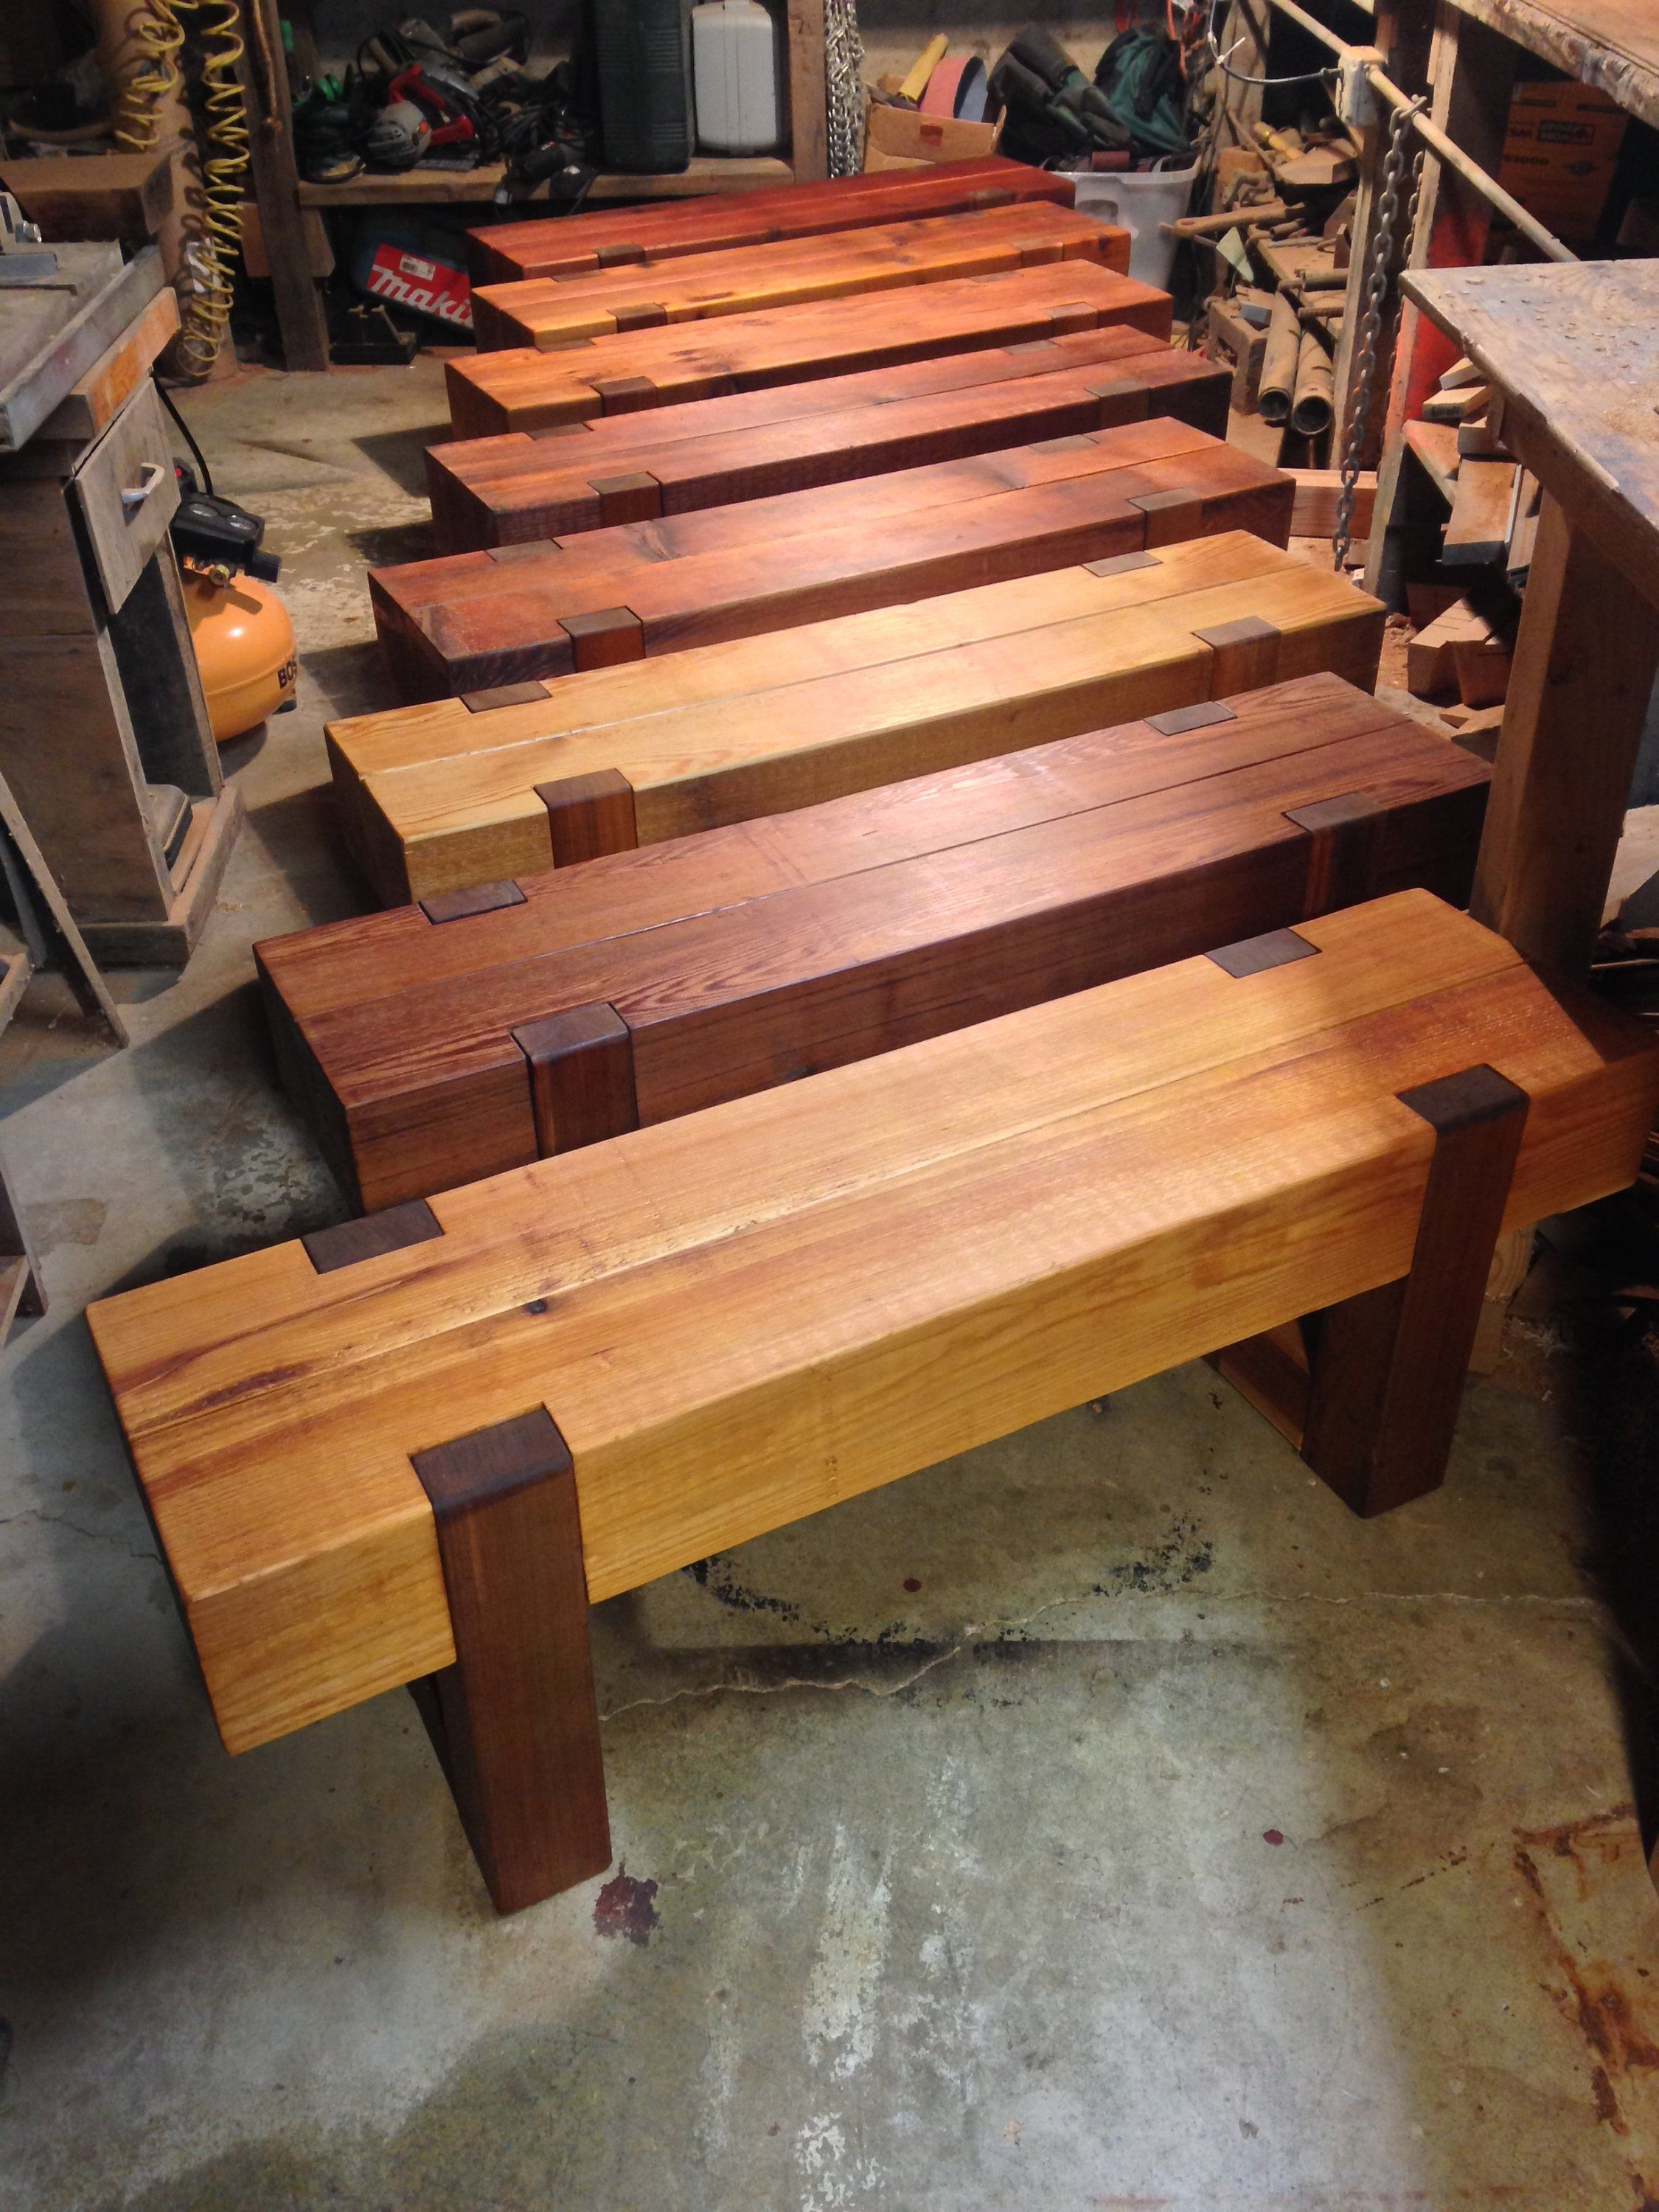 Wood Bench Outdoor Modern Rustic Garden Patio Entryway Dining Farmhouse In 2020 Wood Bench Outdoor Modern Wood Bench Wood Bench